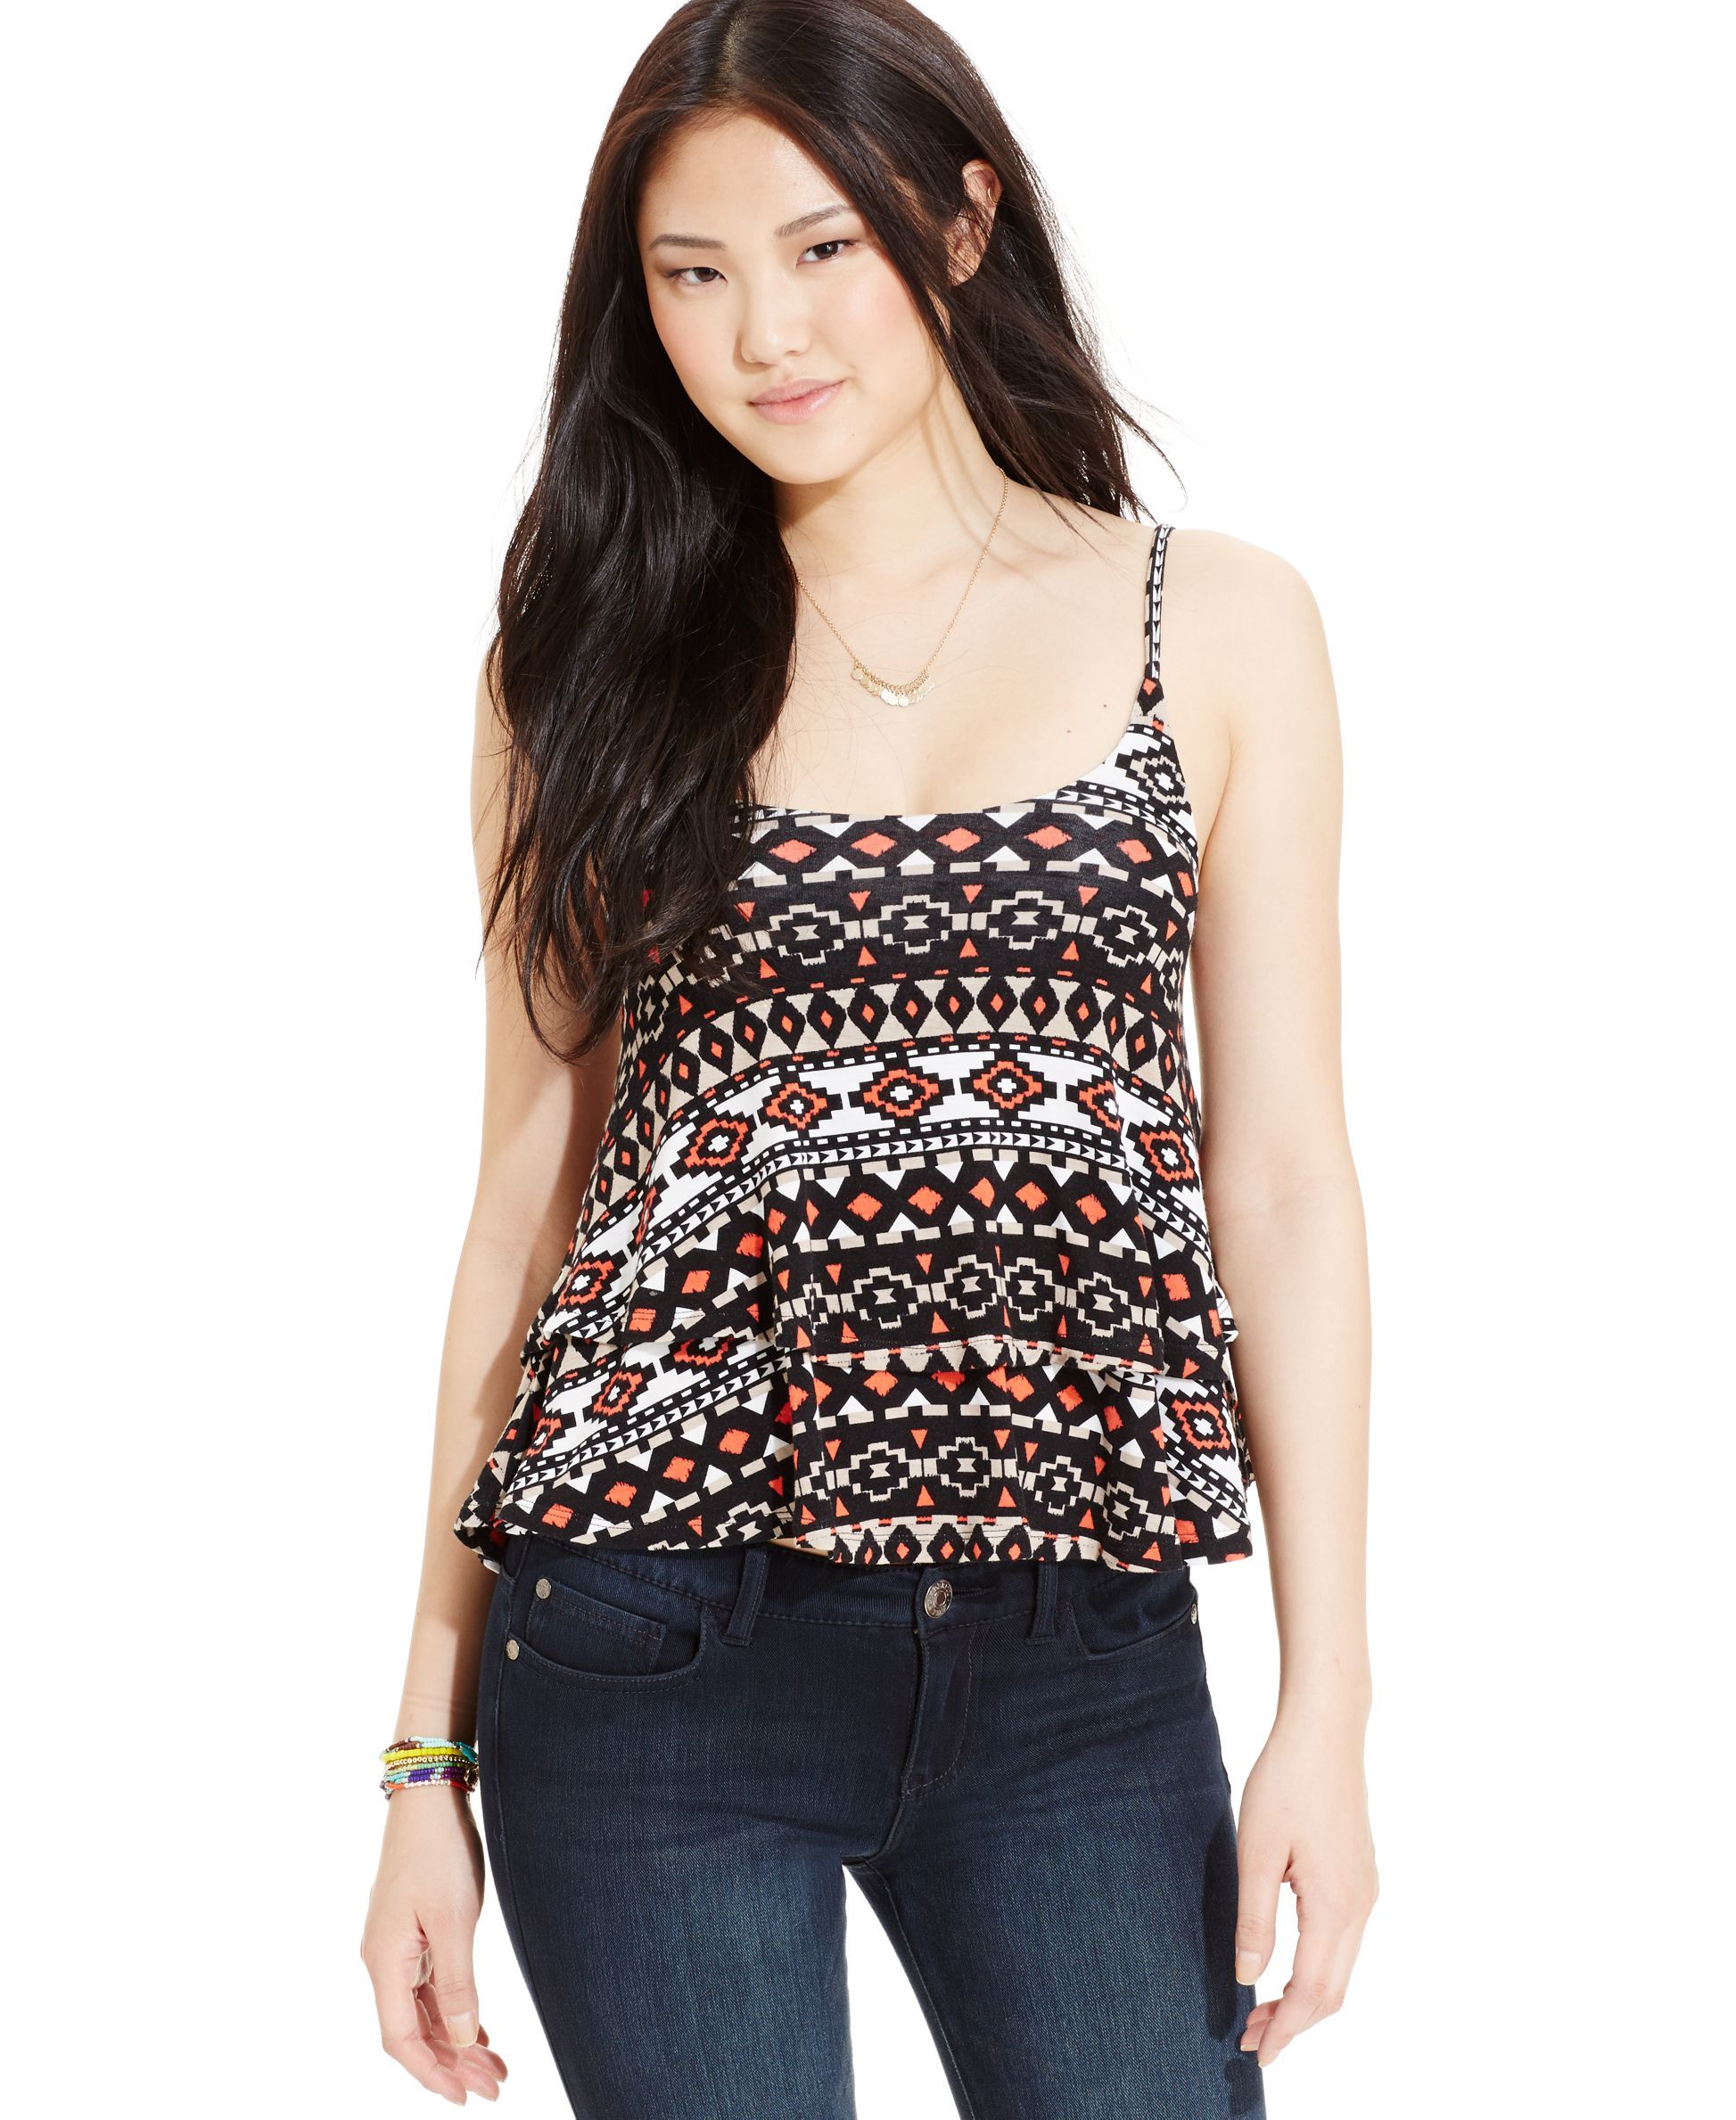 Planet Gold Juniors' Printed Tiered Tank Top